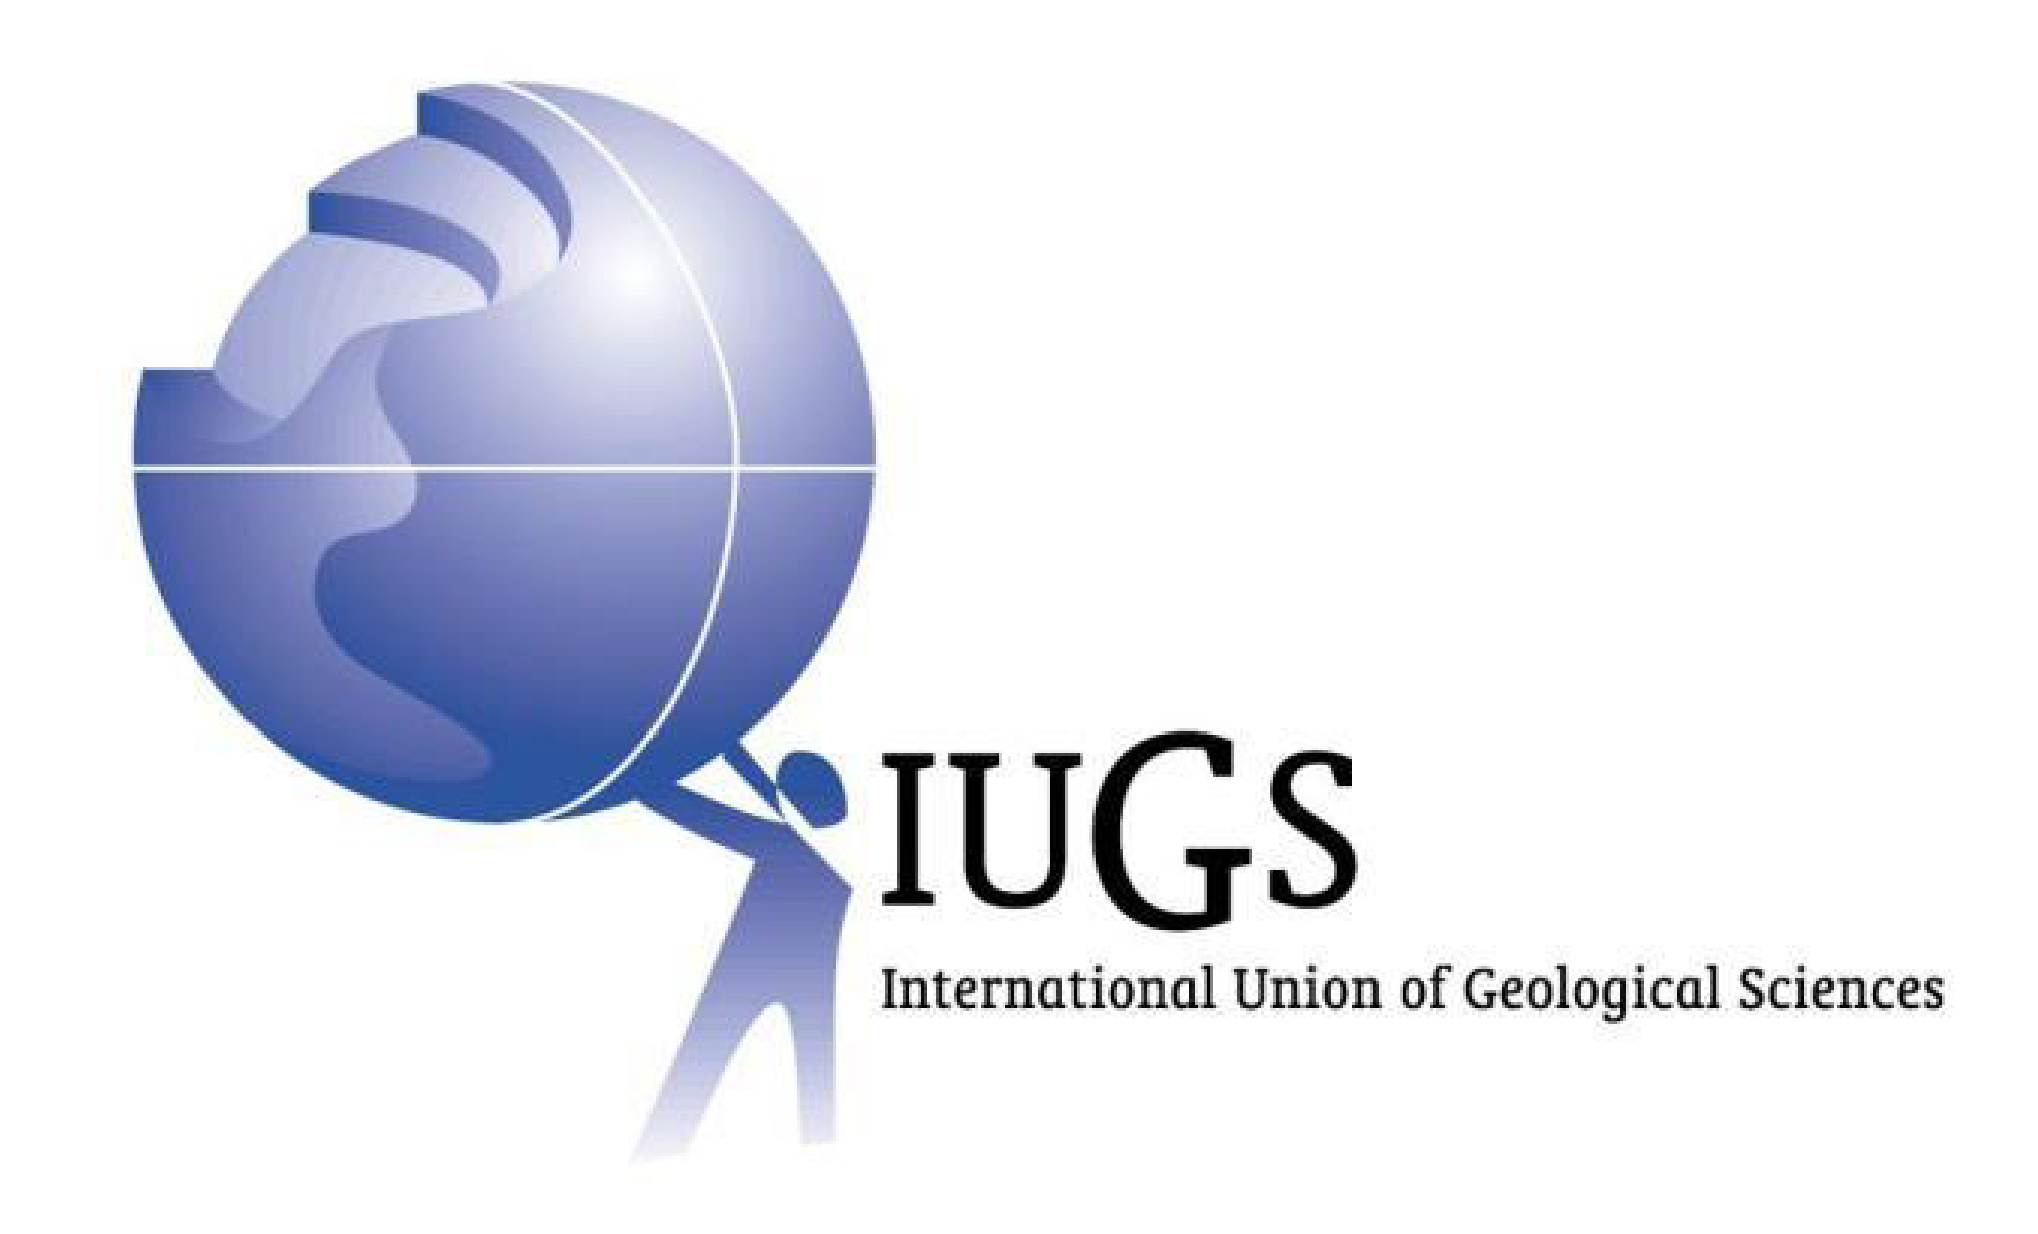 International Union of Geological Sciences